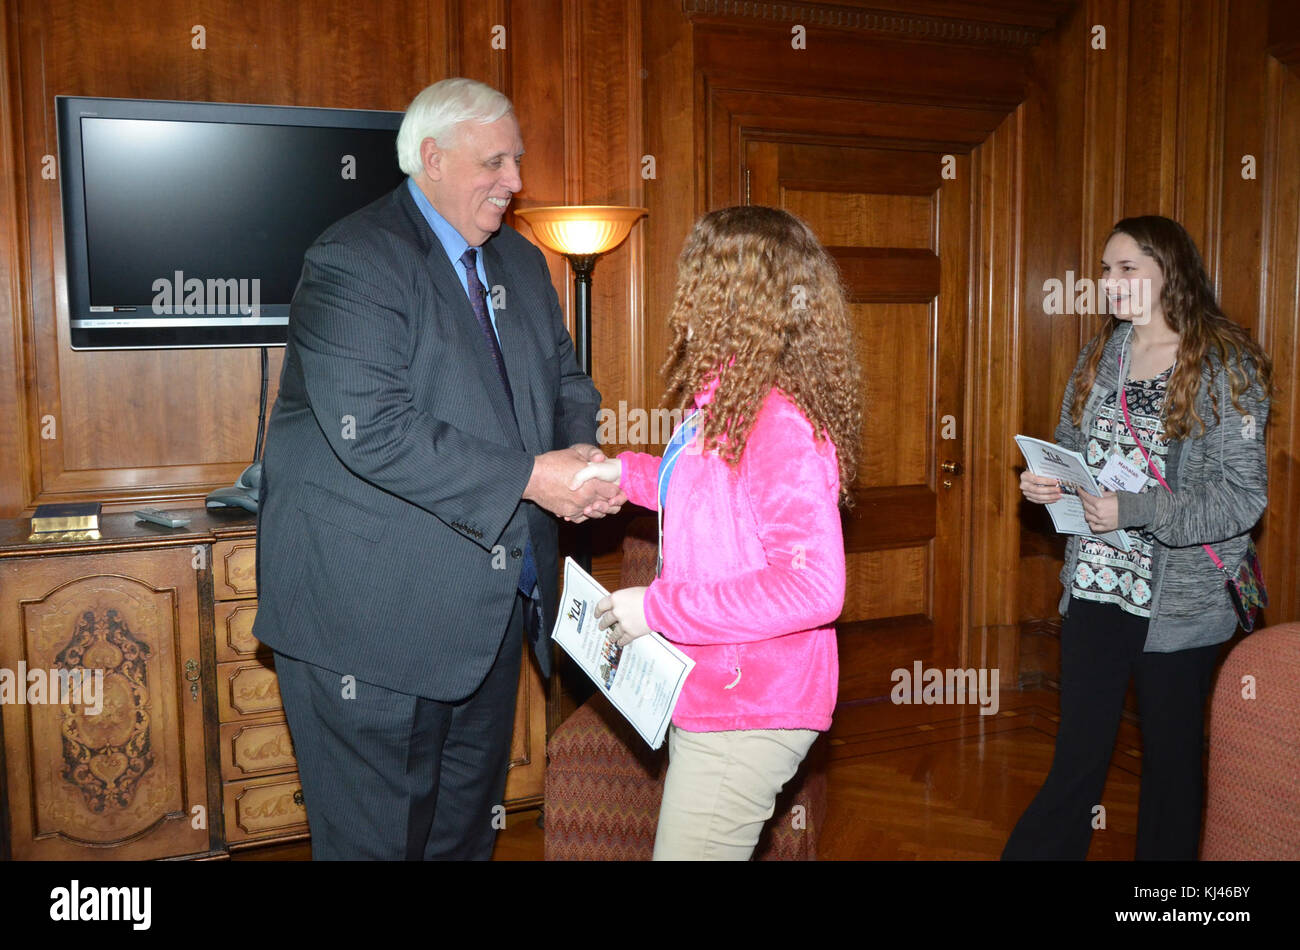 Jim Justice DSC 3416 (33347473795) - Stock Image